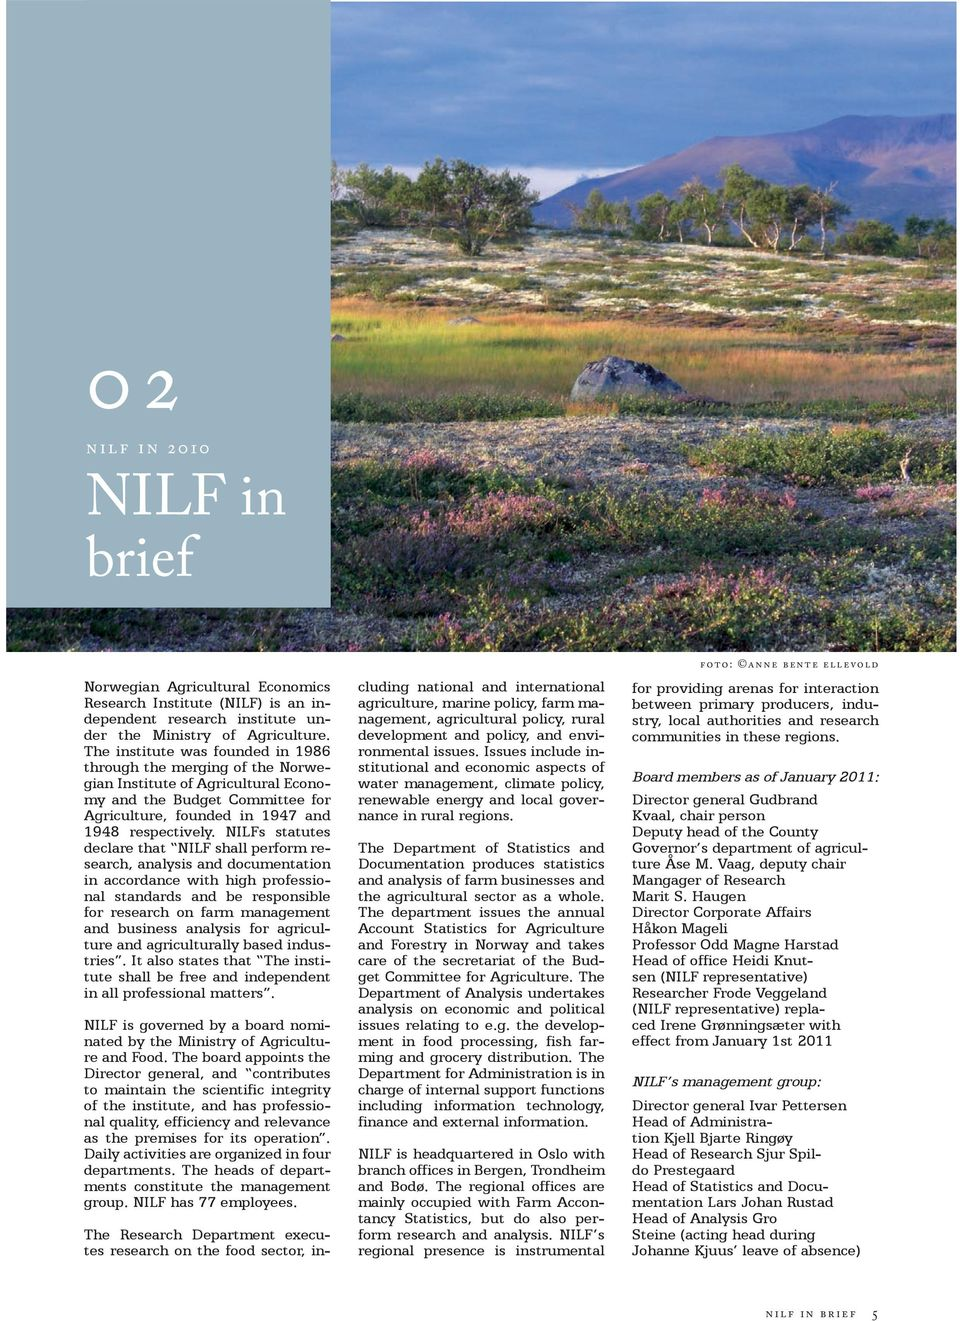 NILFs statu tes declare that NILF shall perform research, analysis and documen tation in accordance with high professional standards and be responsible for research on farm management and business